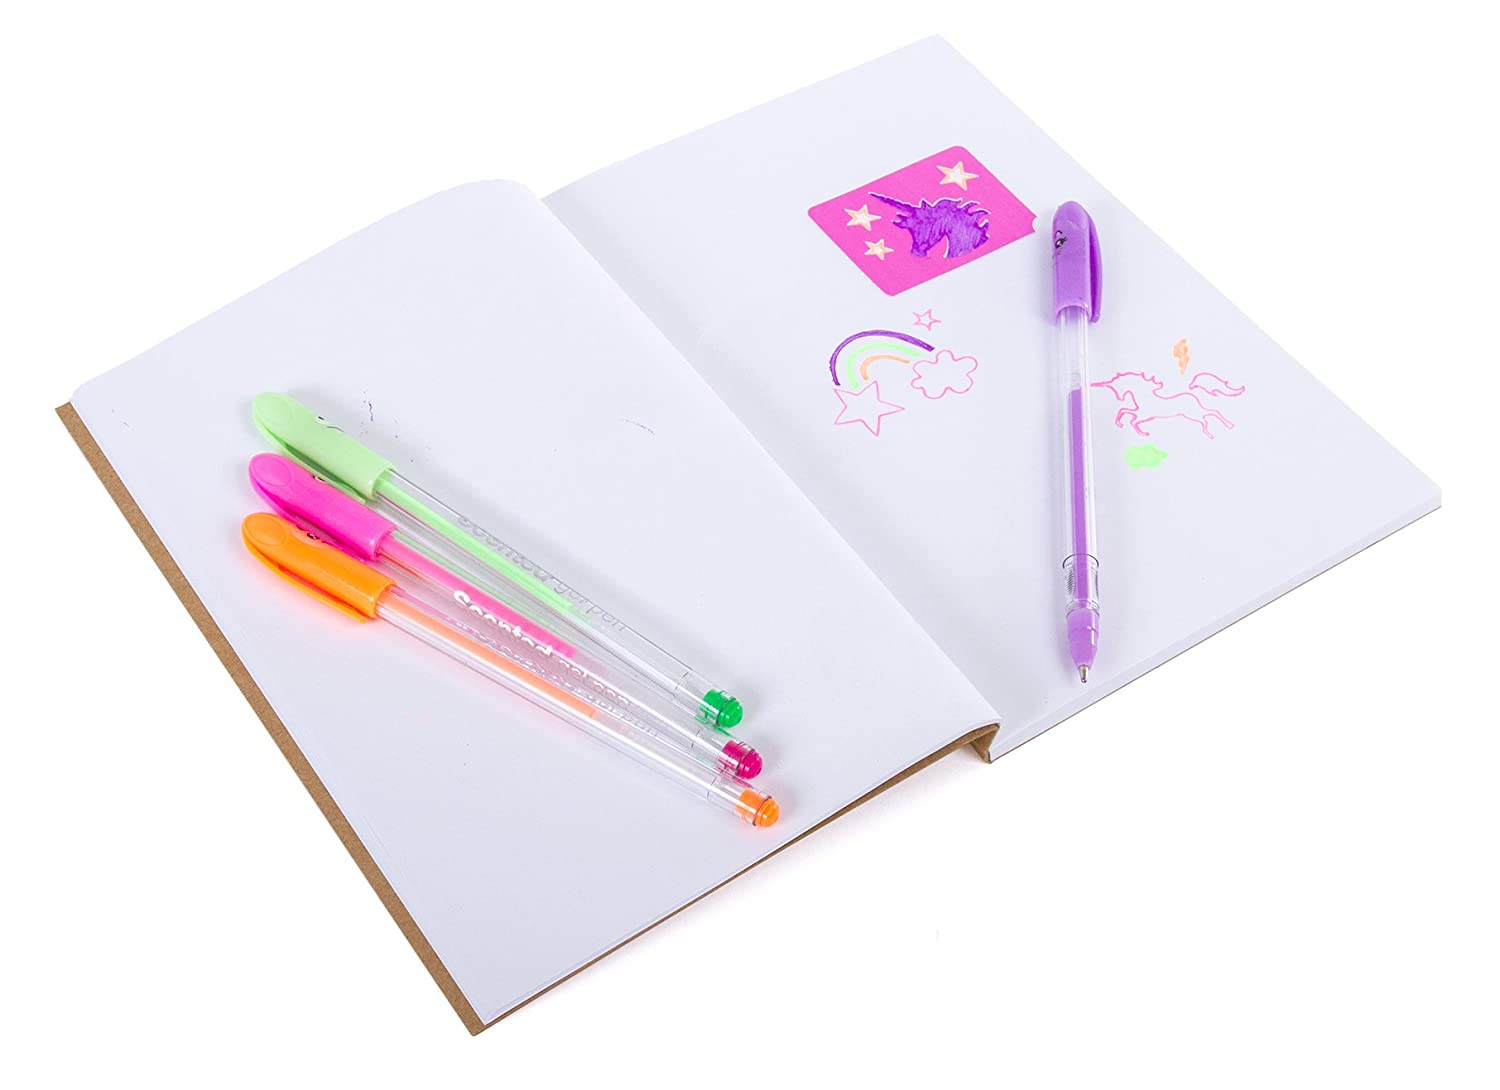 Decorate Your Own Journal Diary with 4 Scented Gel Pens Scratch /'N Sniff Unicorn Stickers and Stencils SG/_B075H3VHNZ/_US Hot Focus DIY Unicorn Notebook Kit